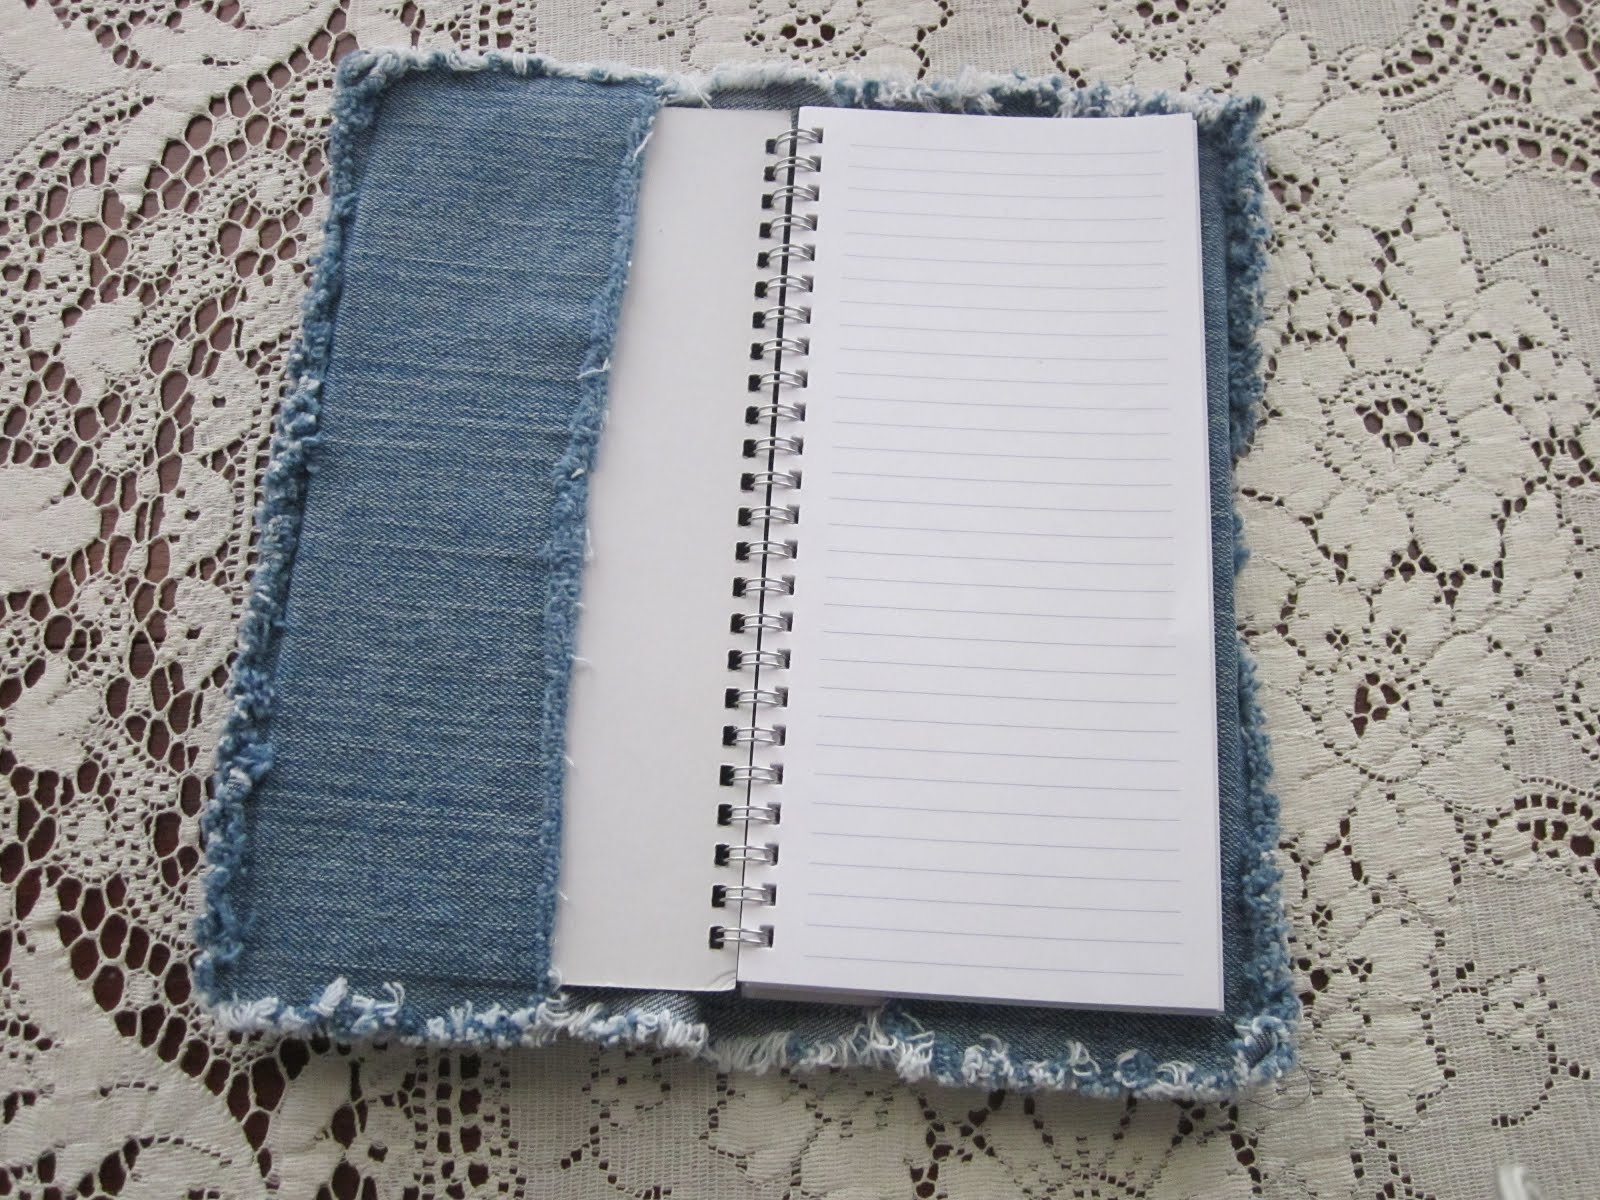 Denim Book Cover Diy : Blue janes bags diy recycled denim notebook cover